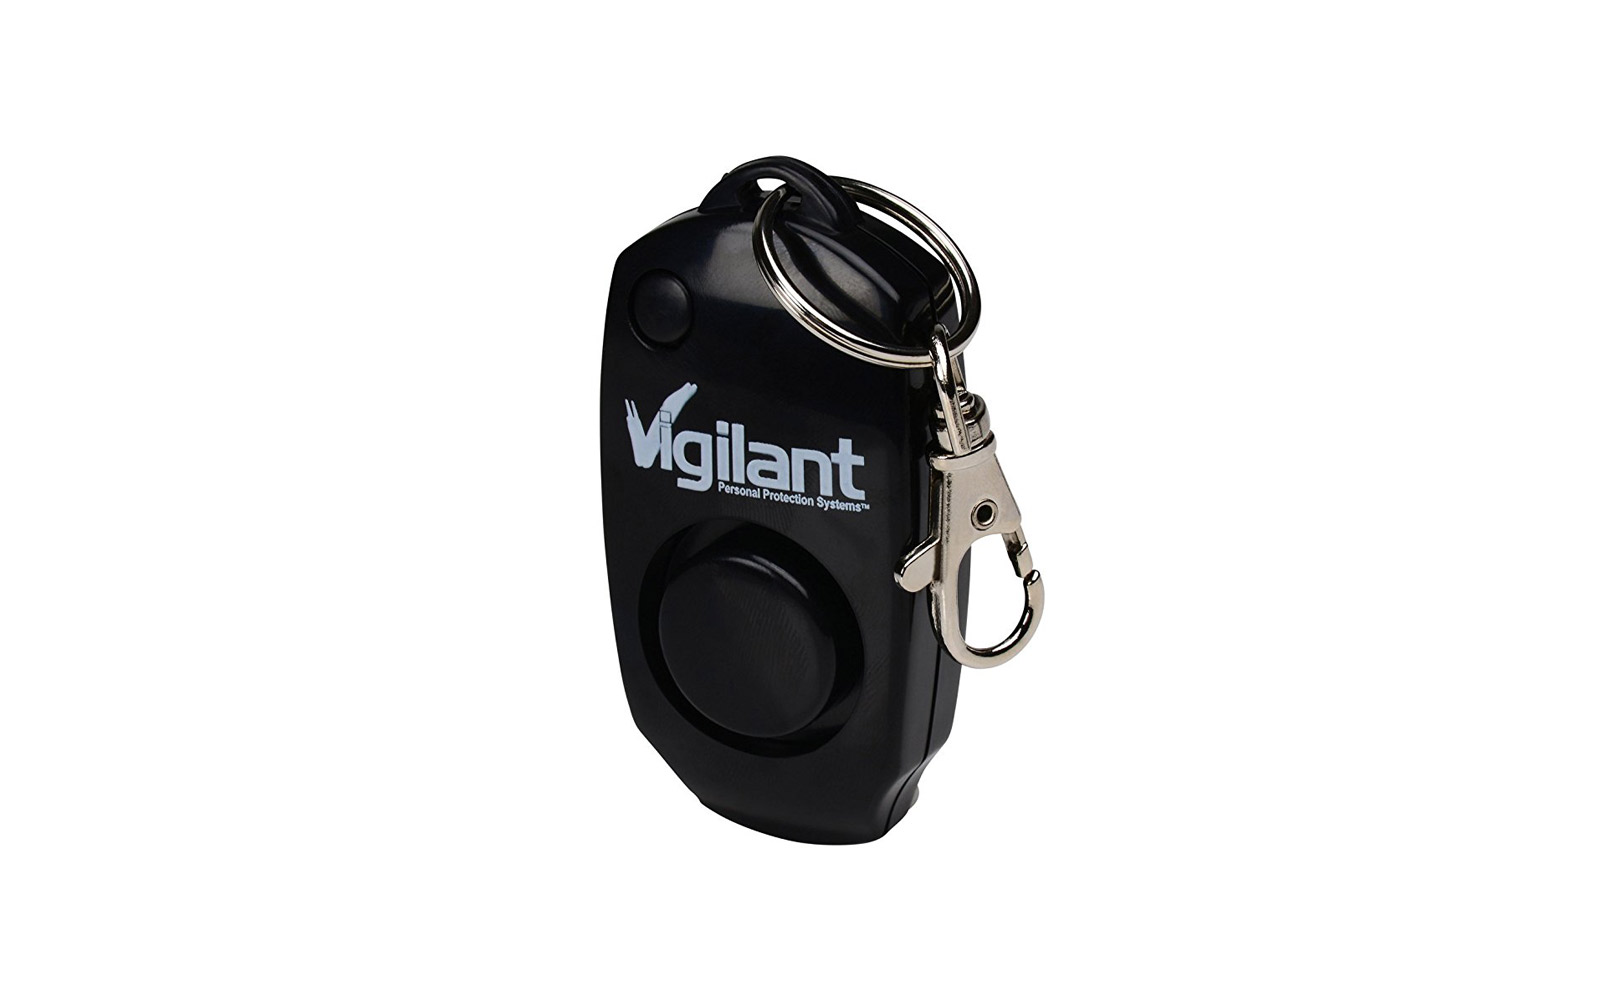 vigilant 130db personal safety alarm